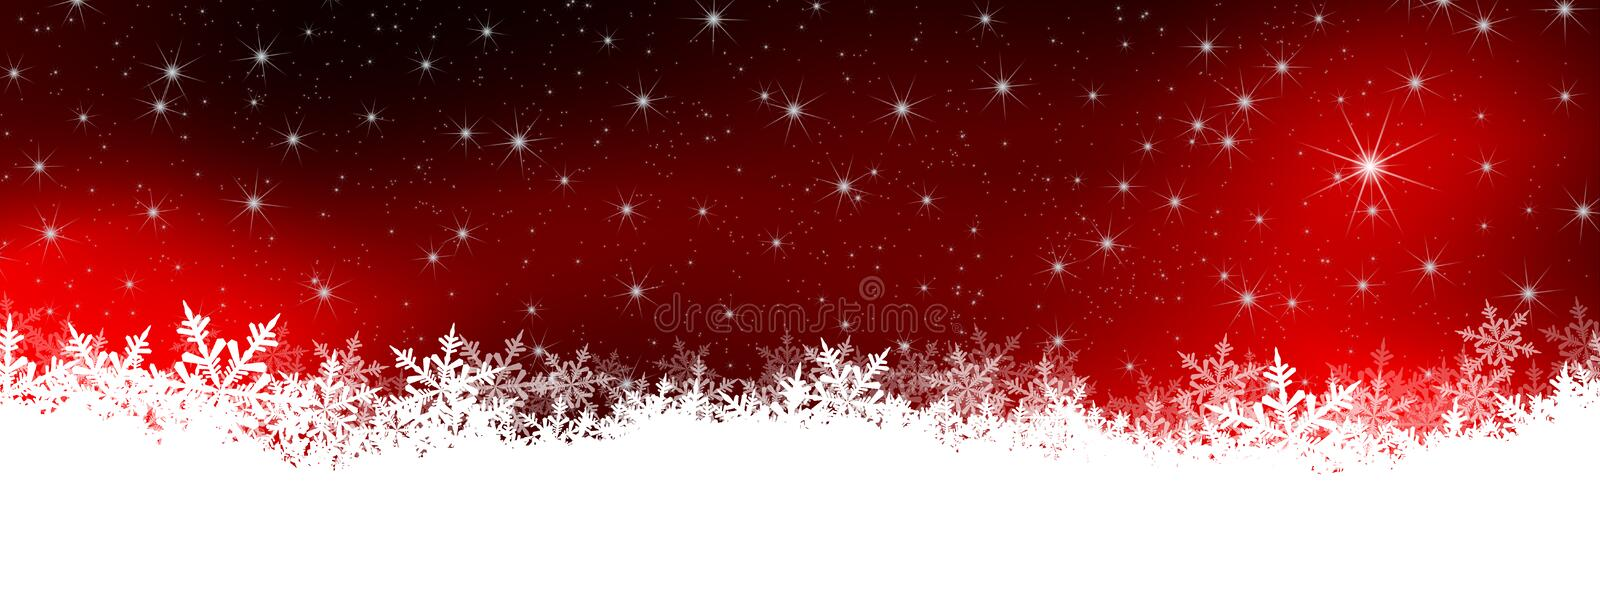 Abstract Winter Panorama Background with Starry Red Night Sky and Snowflakes vector illustration